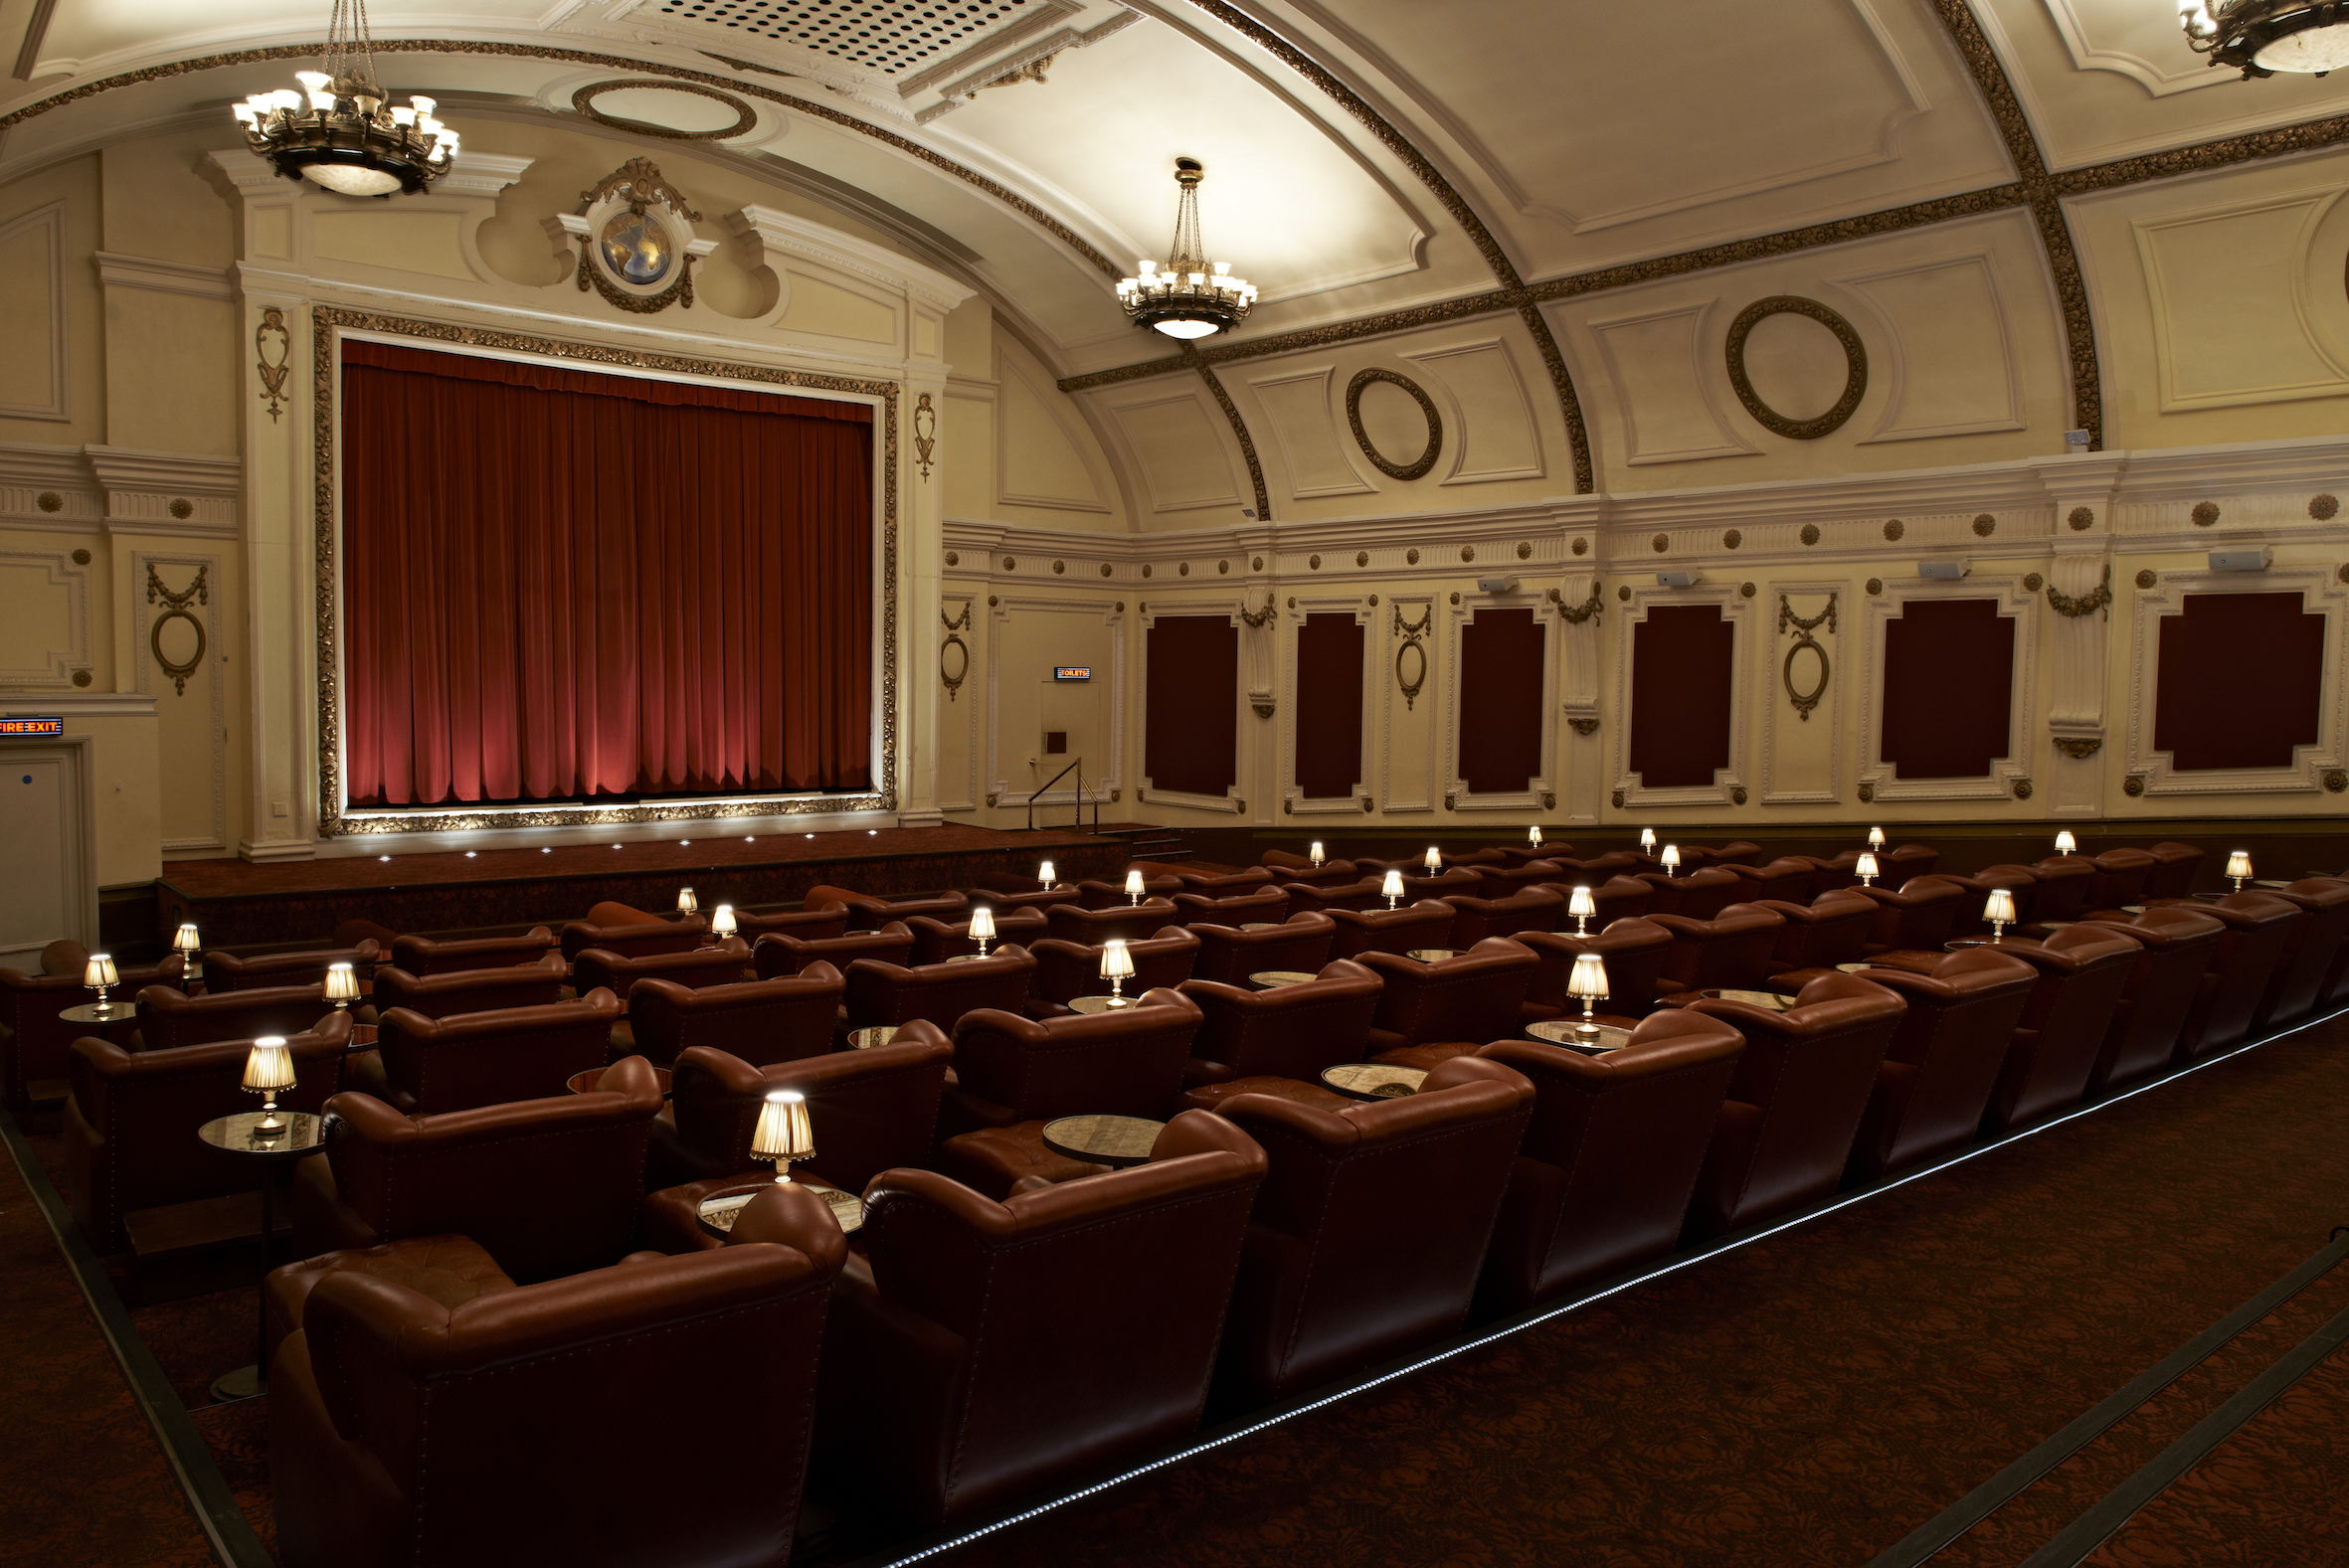 The Best Cinemas In London For A Date